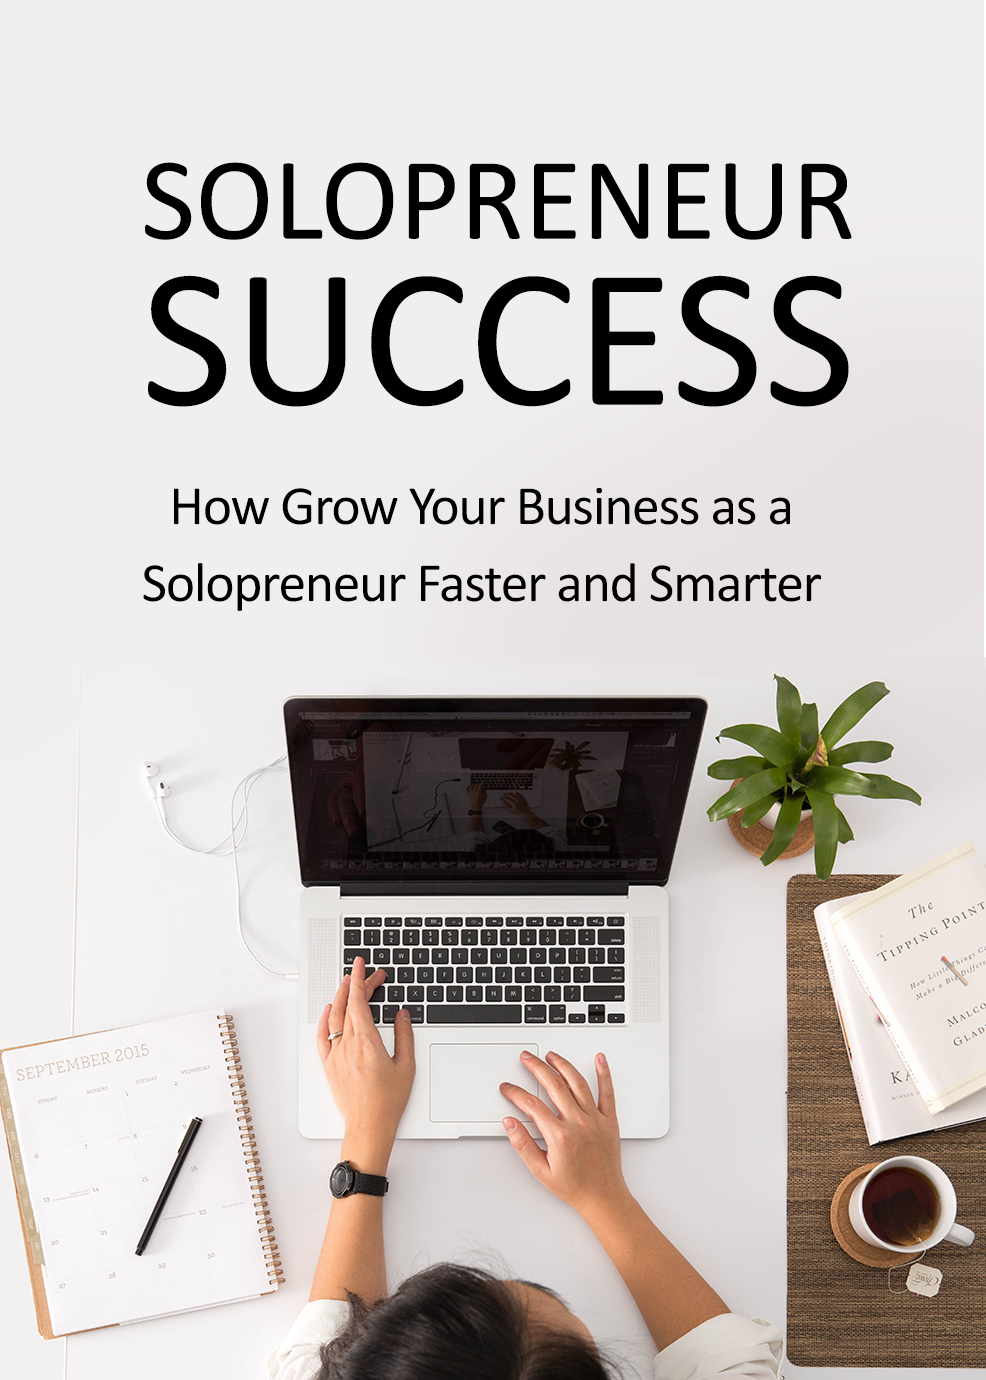 Solopreneur Success: How to Grow Your Business as a Solopreneur Faster and Smarter eBook's Book Image